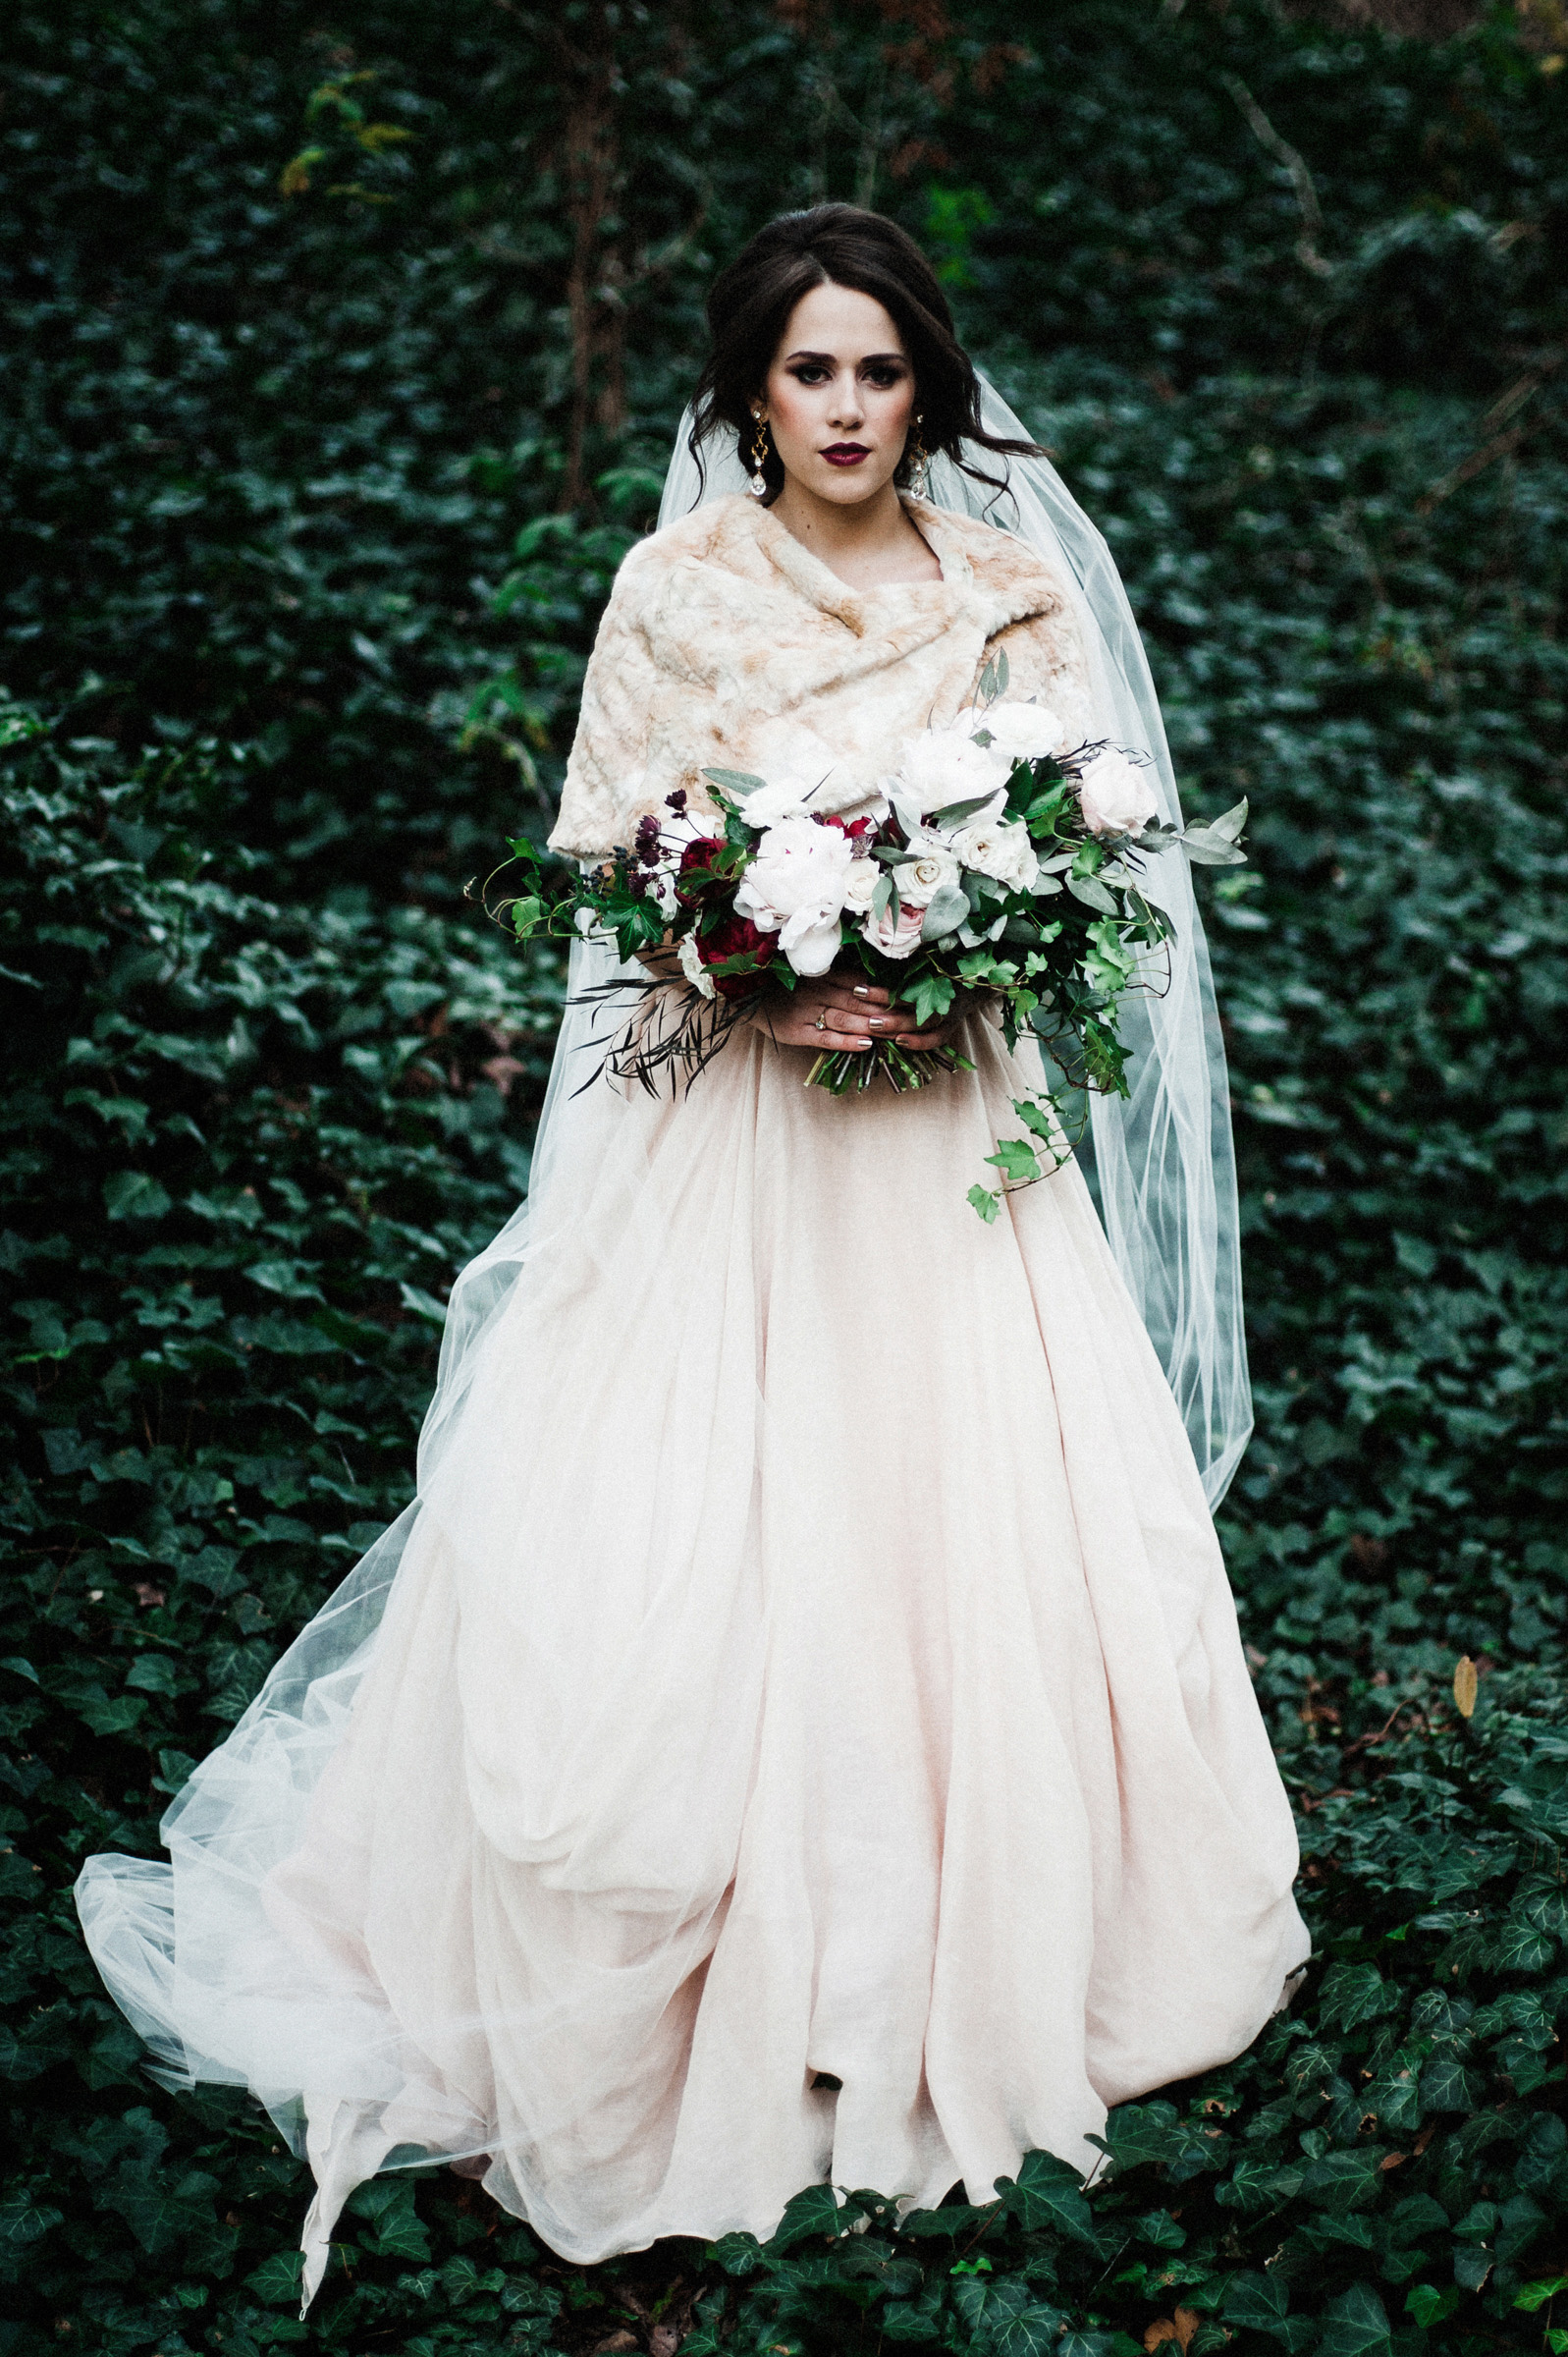 Dark haired bride with blush pink shawl and dahlia bouquet - photo by Richard Israel Photography